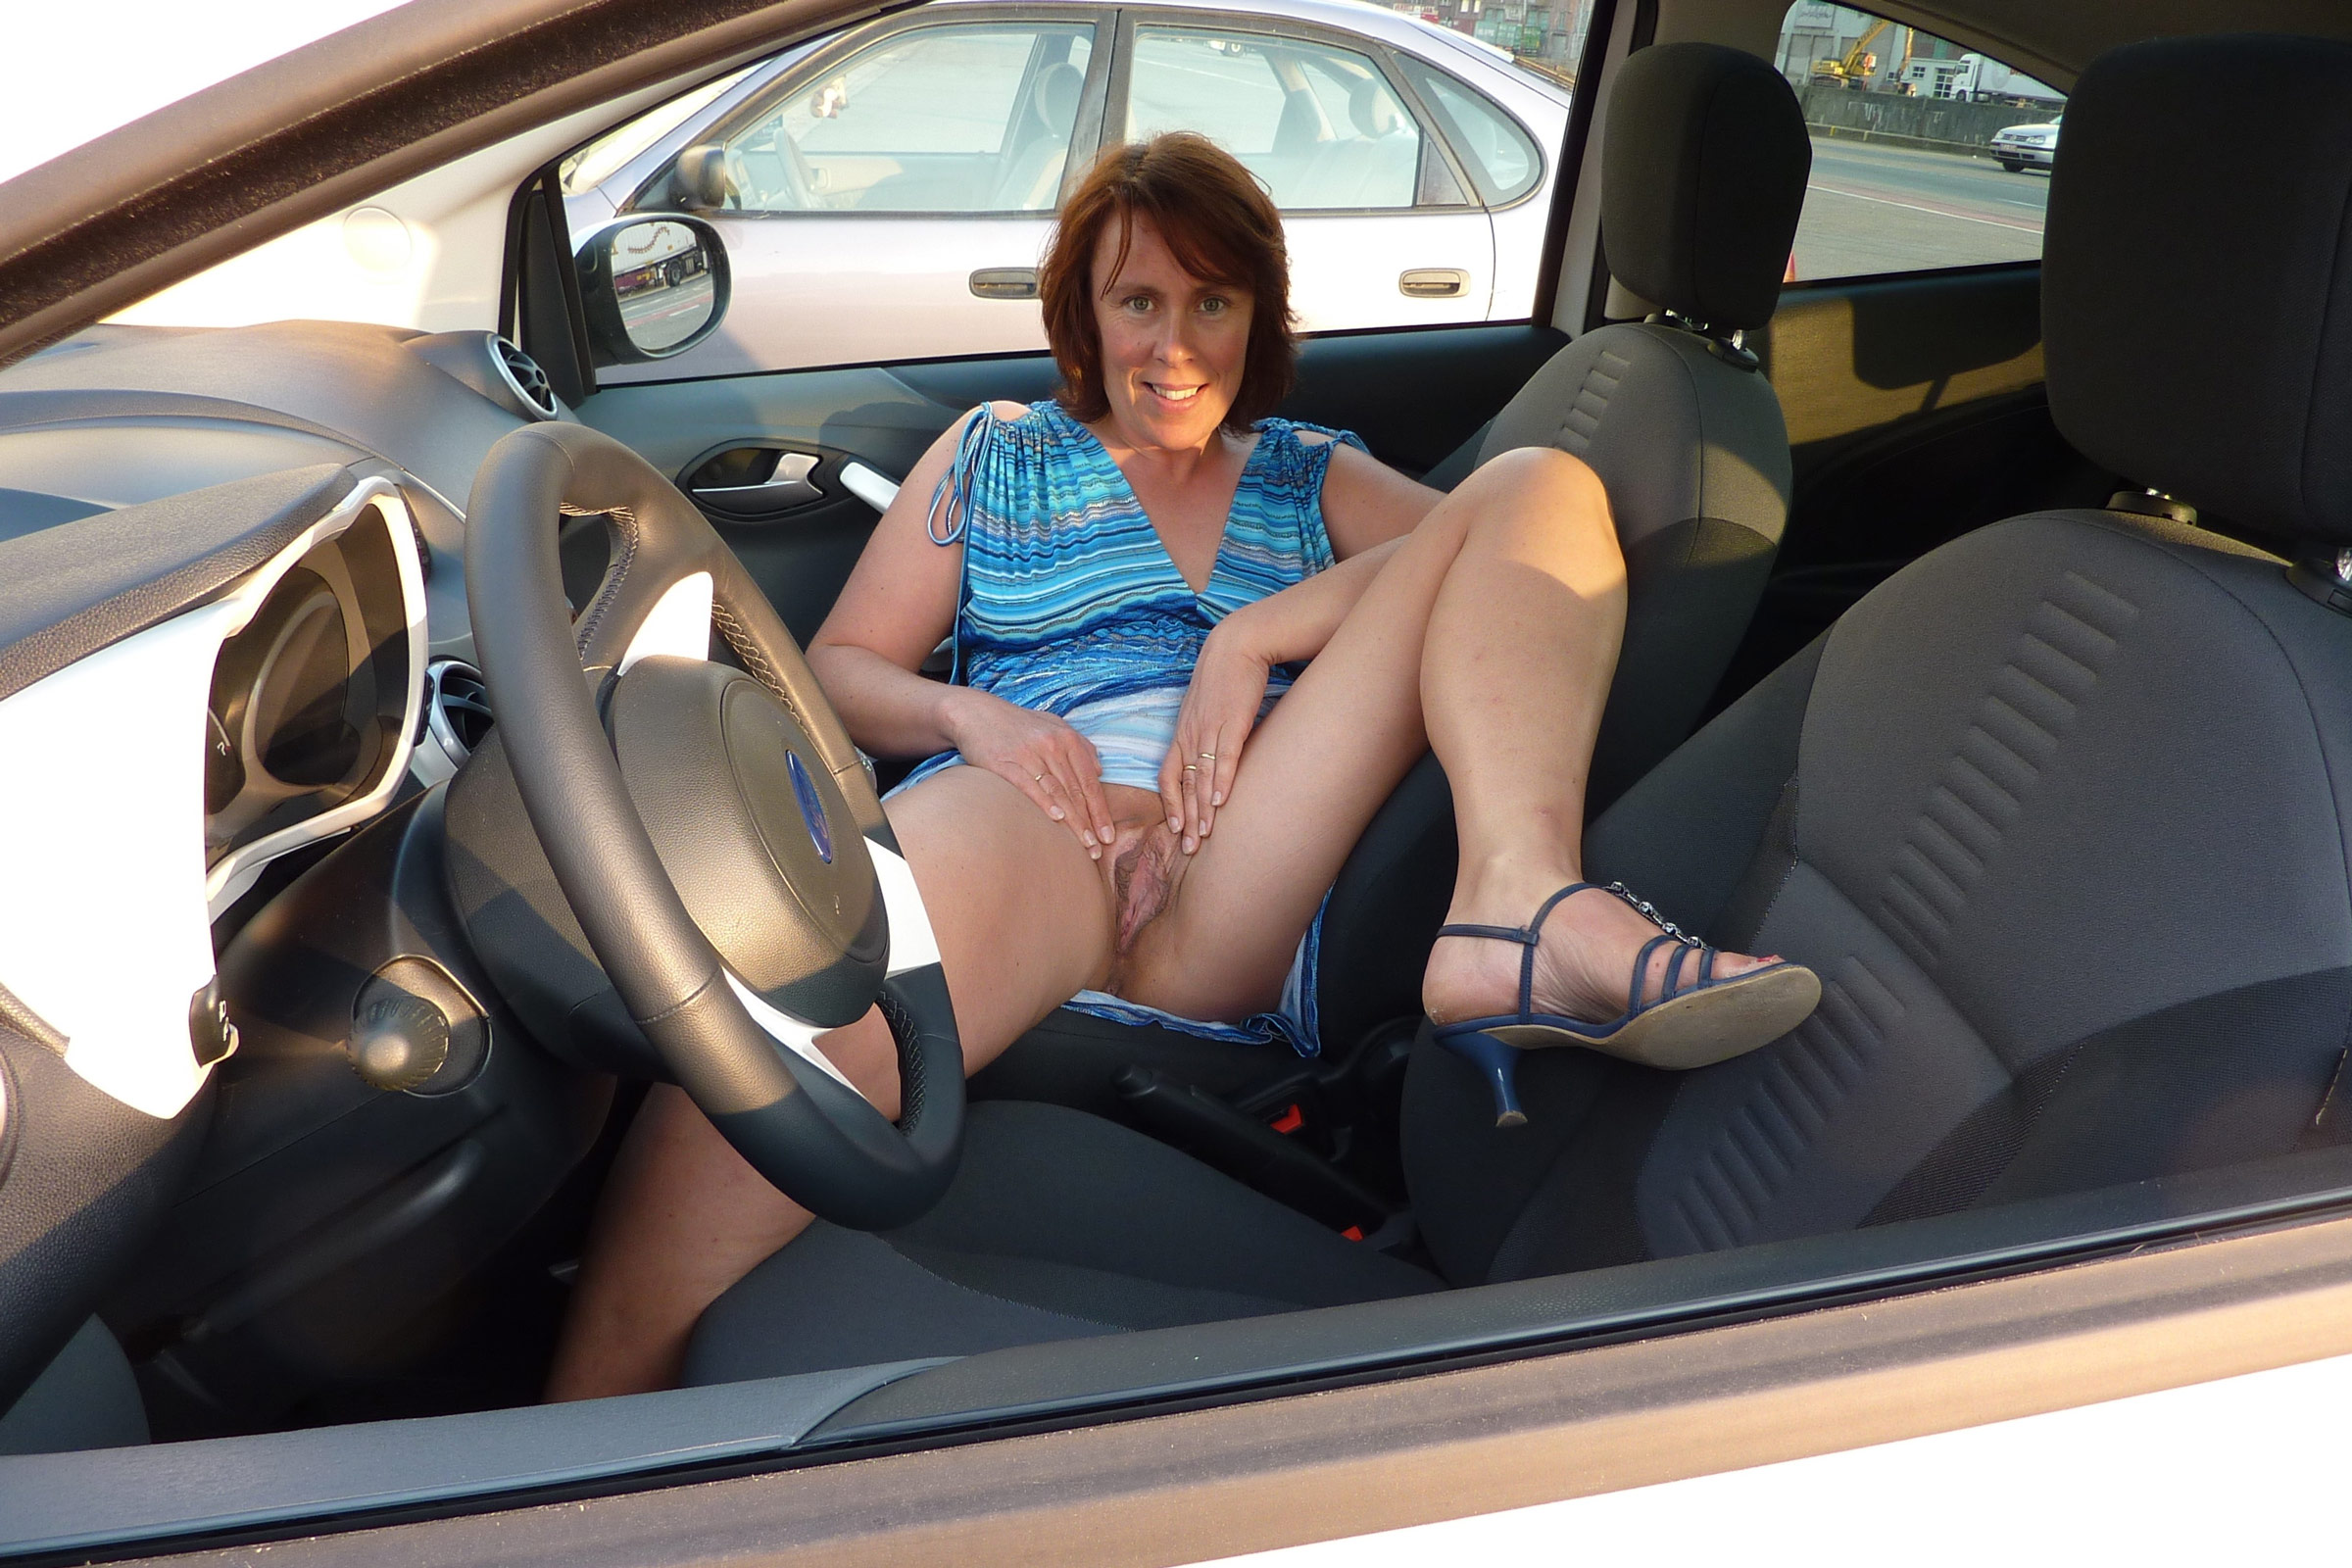 Amature nudes in cars — pic 6